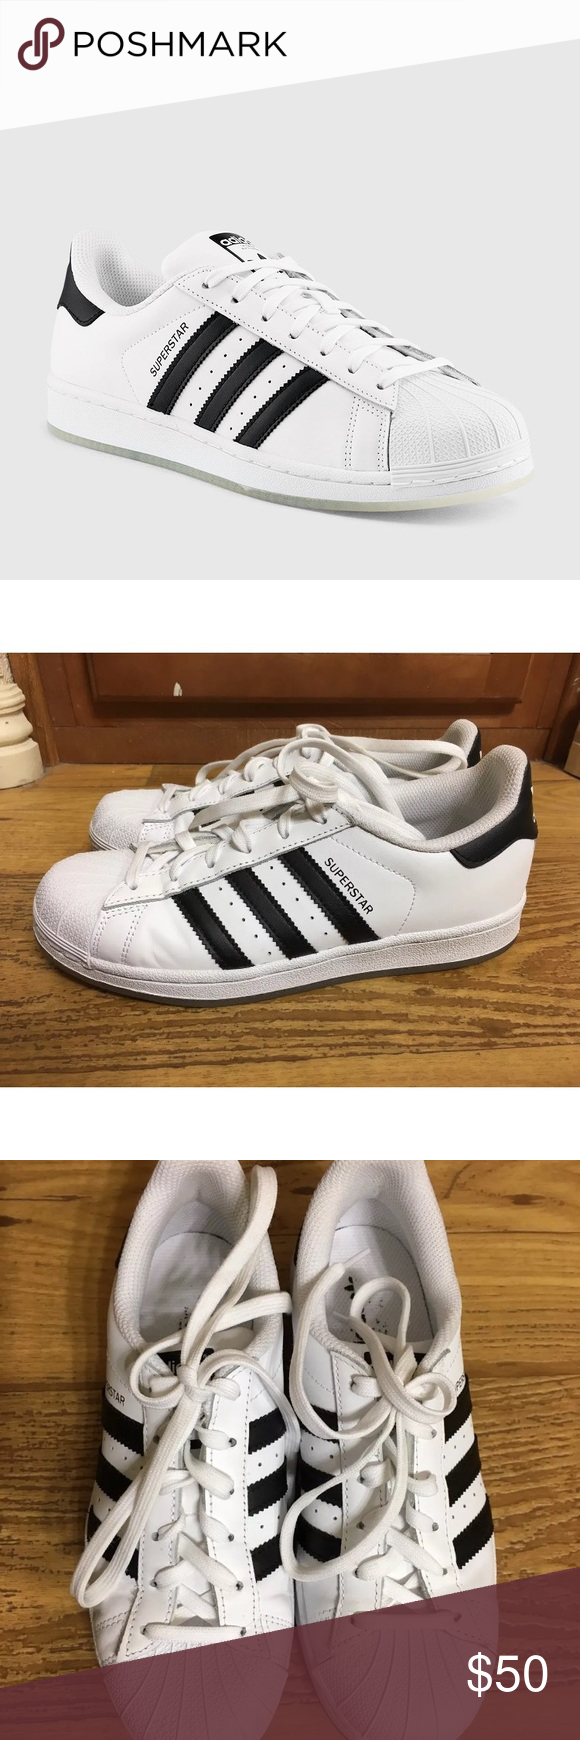 e144670444c4 Adidas Men s Superstar Iced Shoes These are almost new ADIDAS MEN S  SUPERSTAR ICED (WHITE